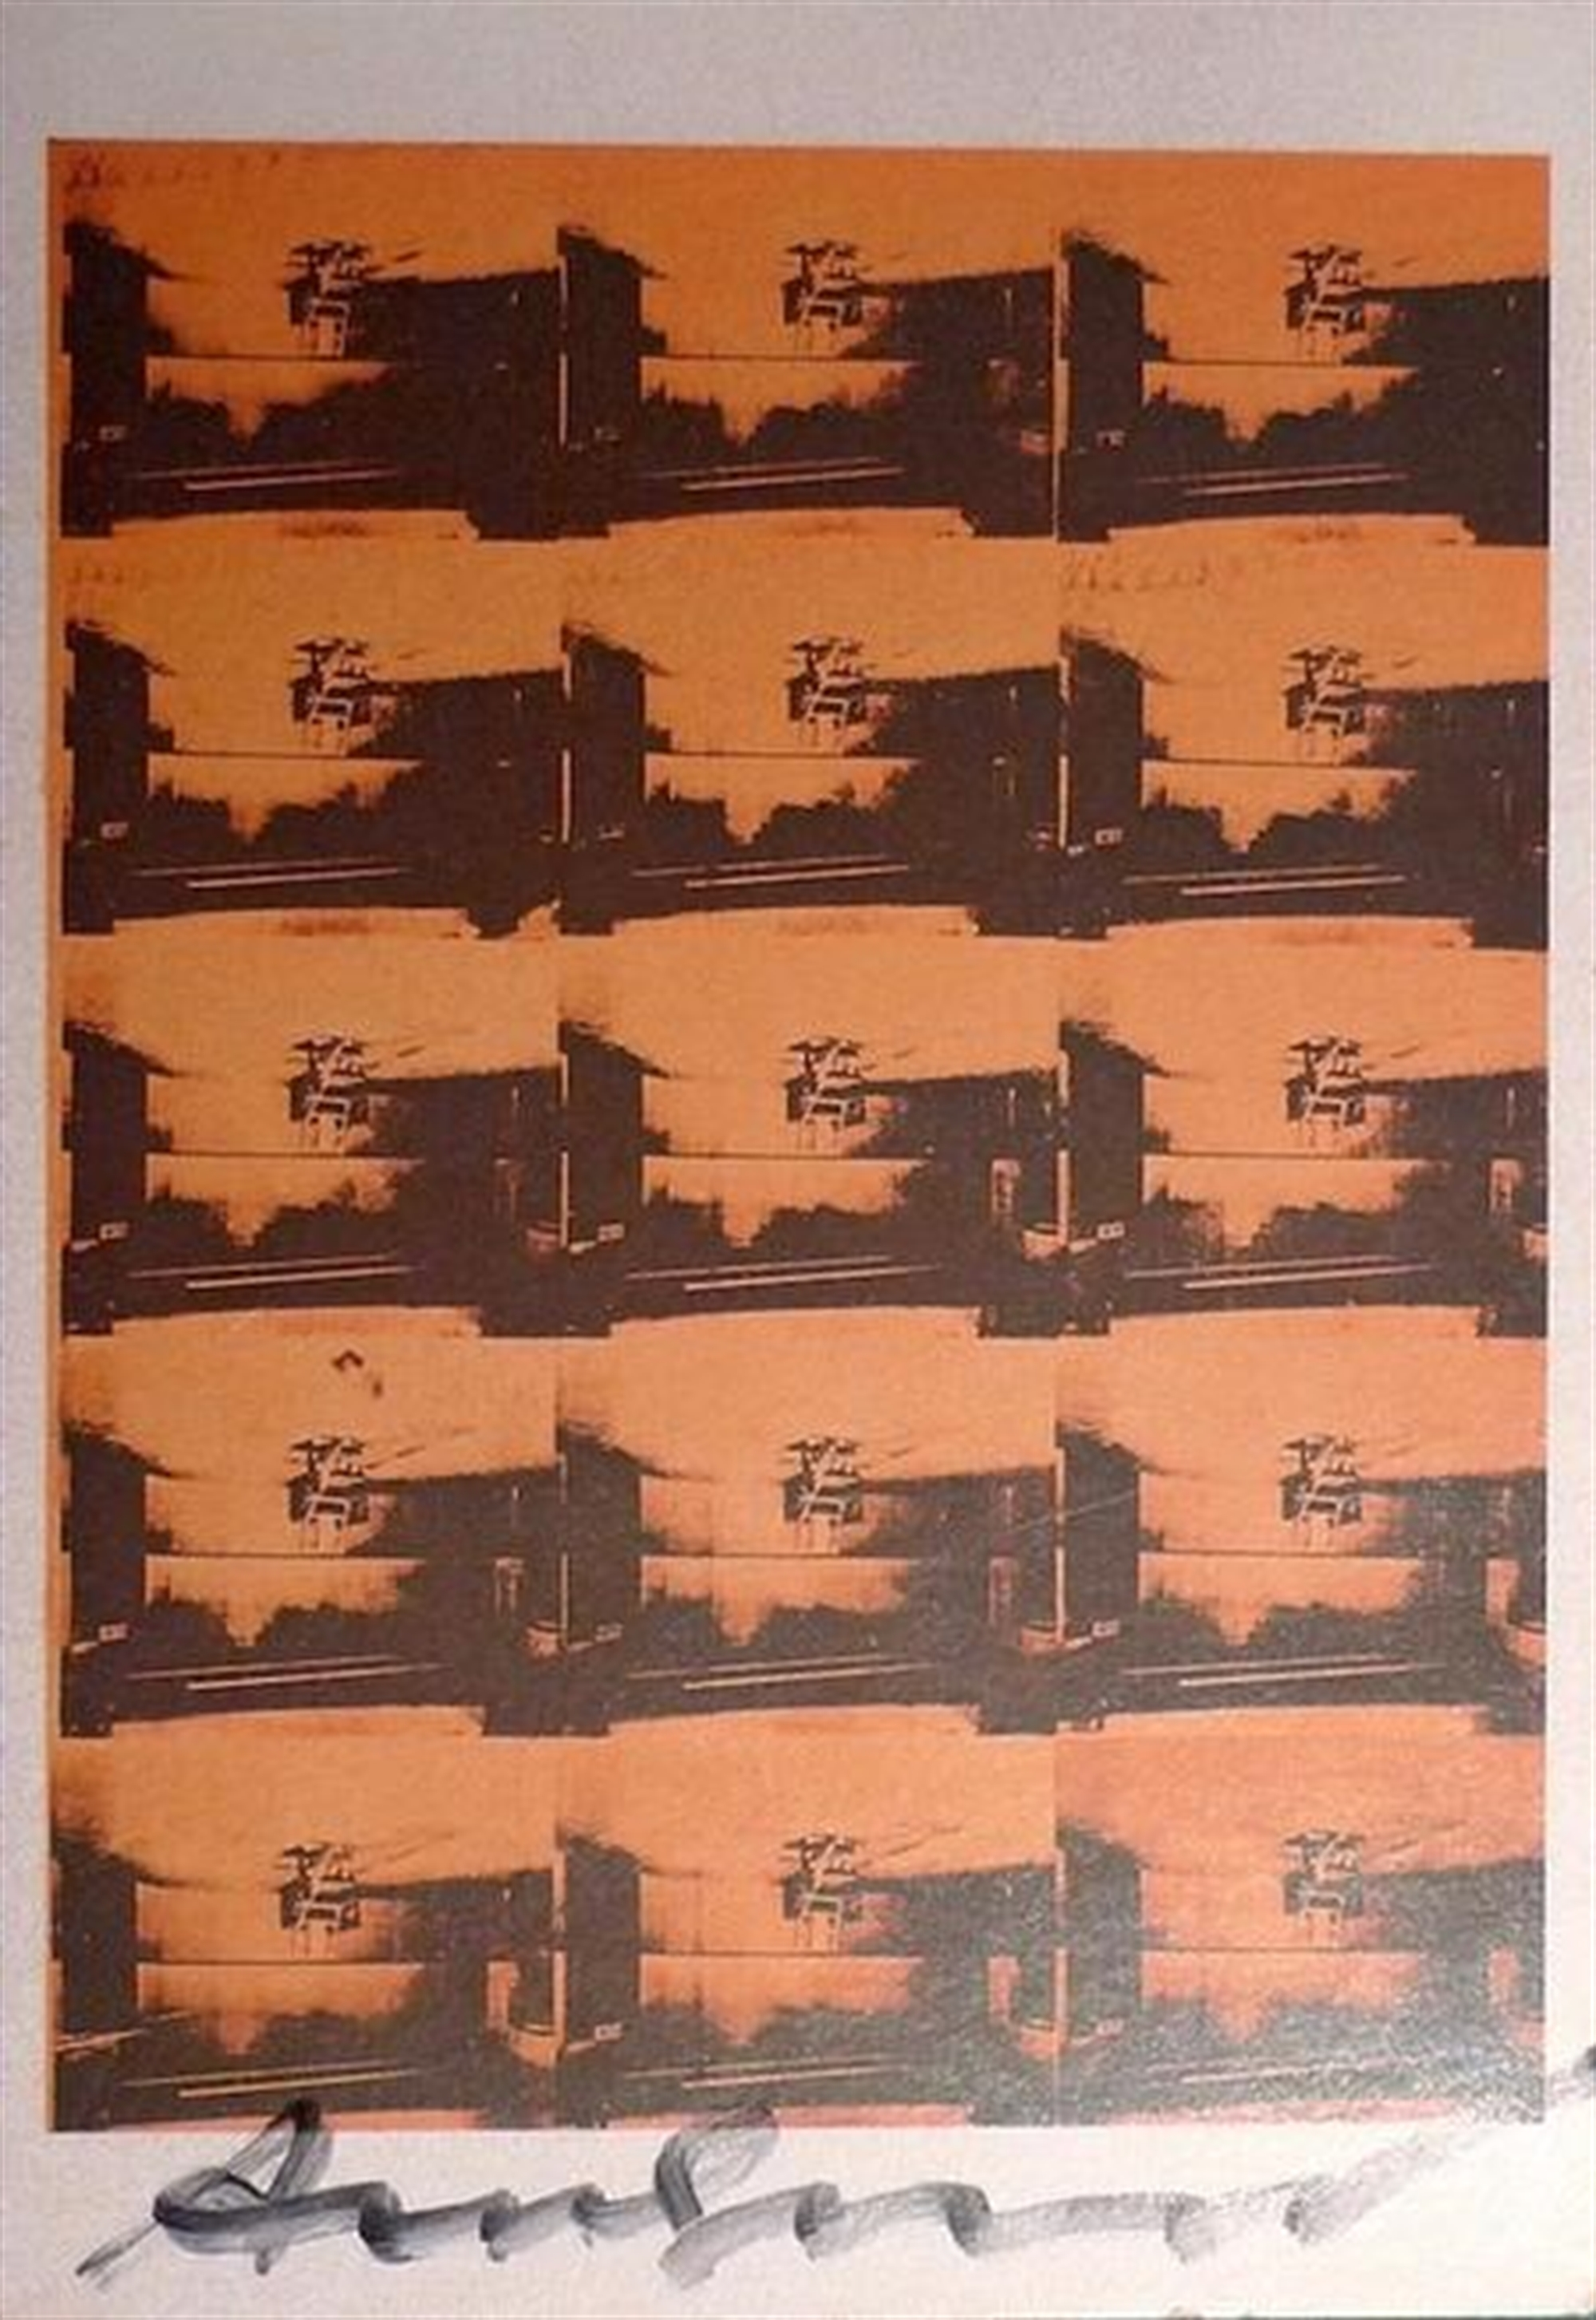 15 Orange Electric Chairs by Andy Warhol